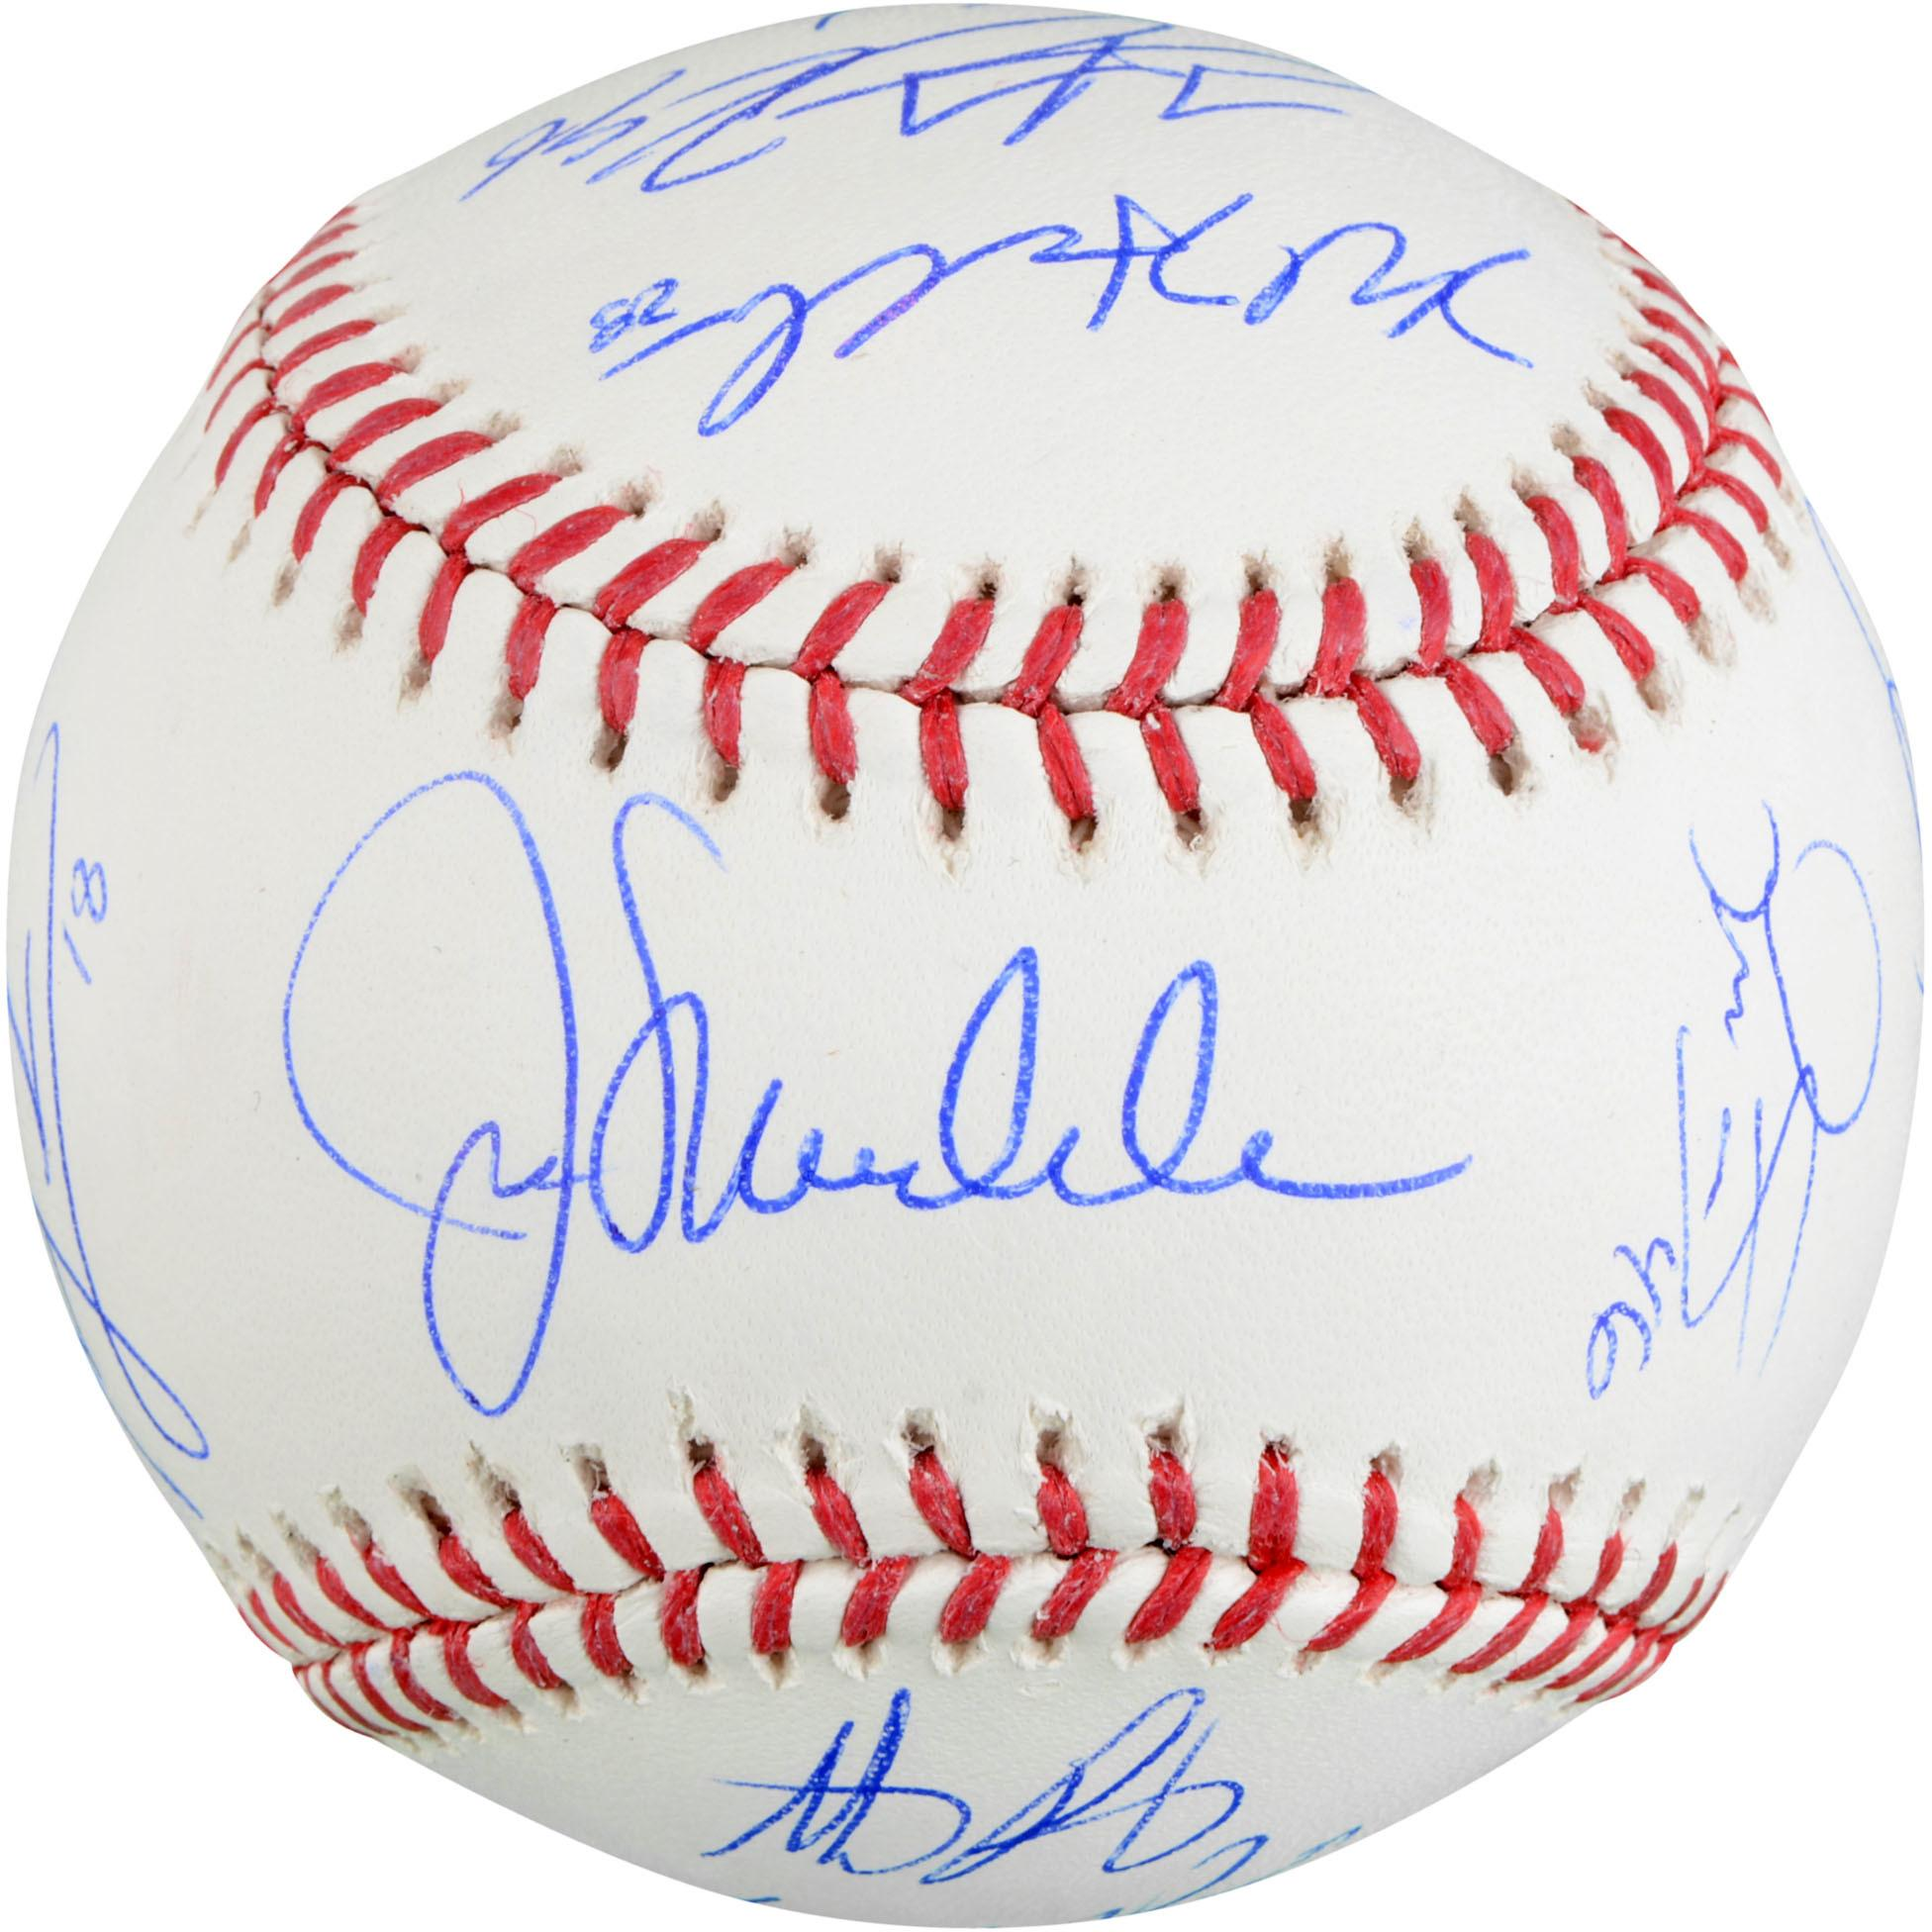 2016 Chicago Cubs Autographed Baseball - 14 Signatures